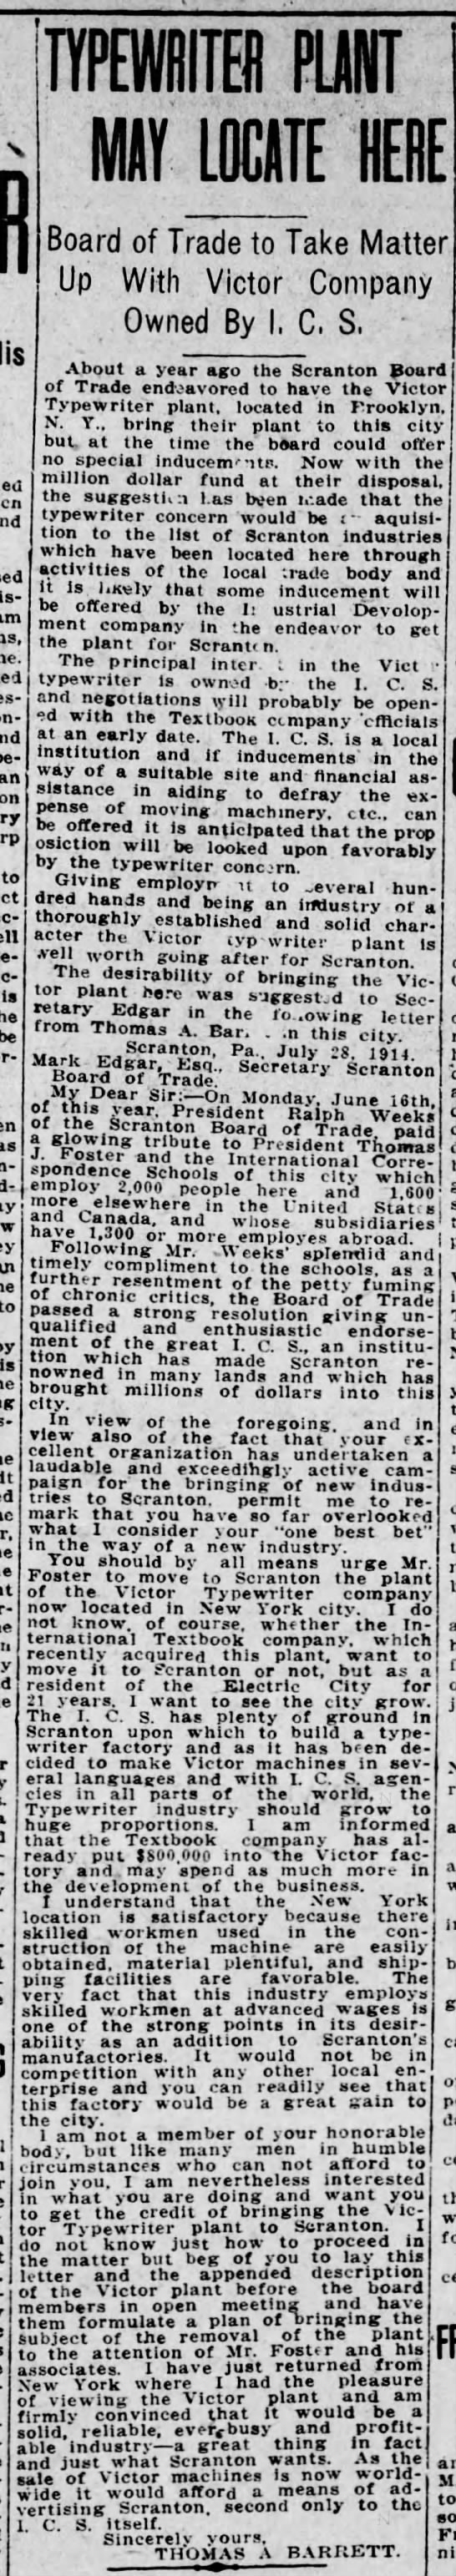 The Scranton Truth 31 July 1914 Thomas A. Barrett letter - do' an to be to it - TYPEWRITER PLANT MAY...